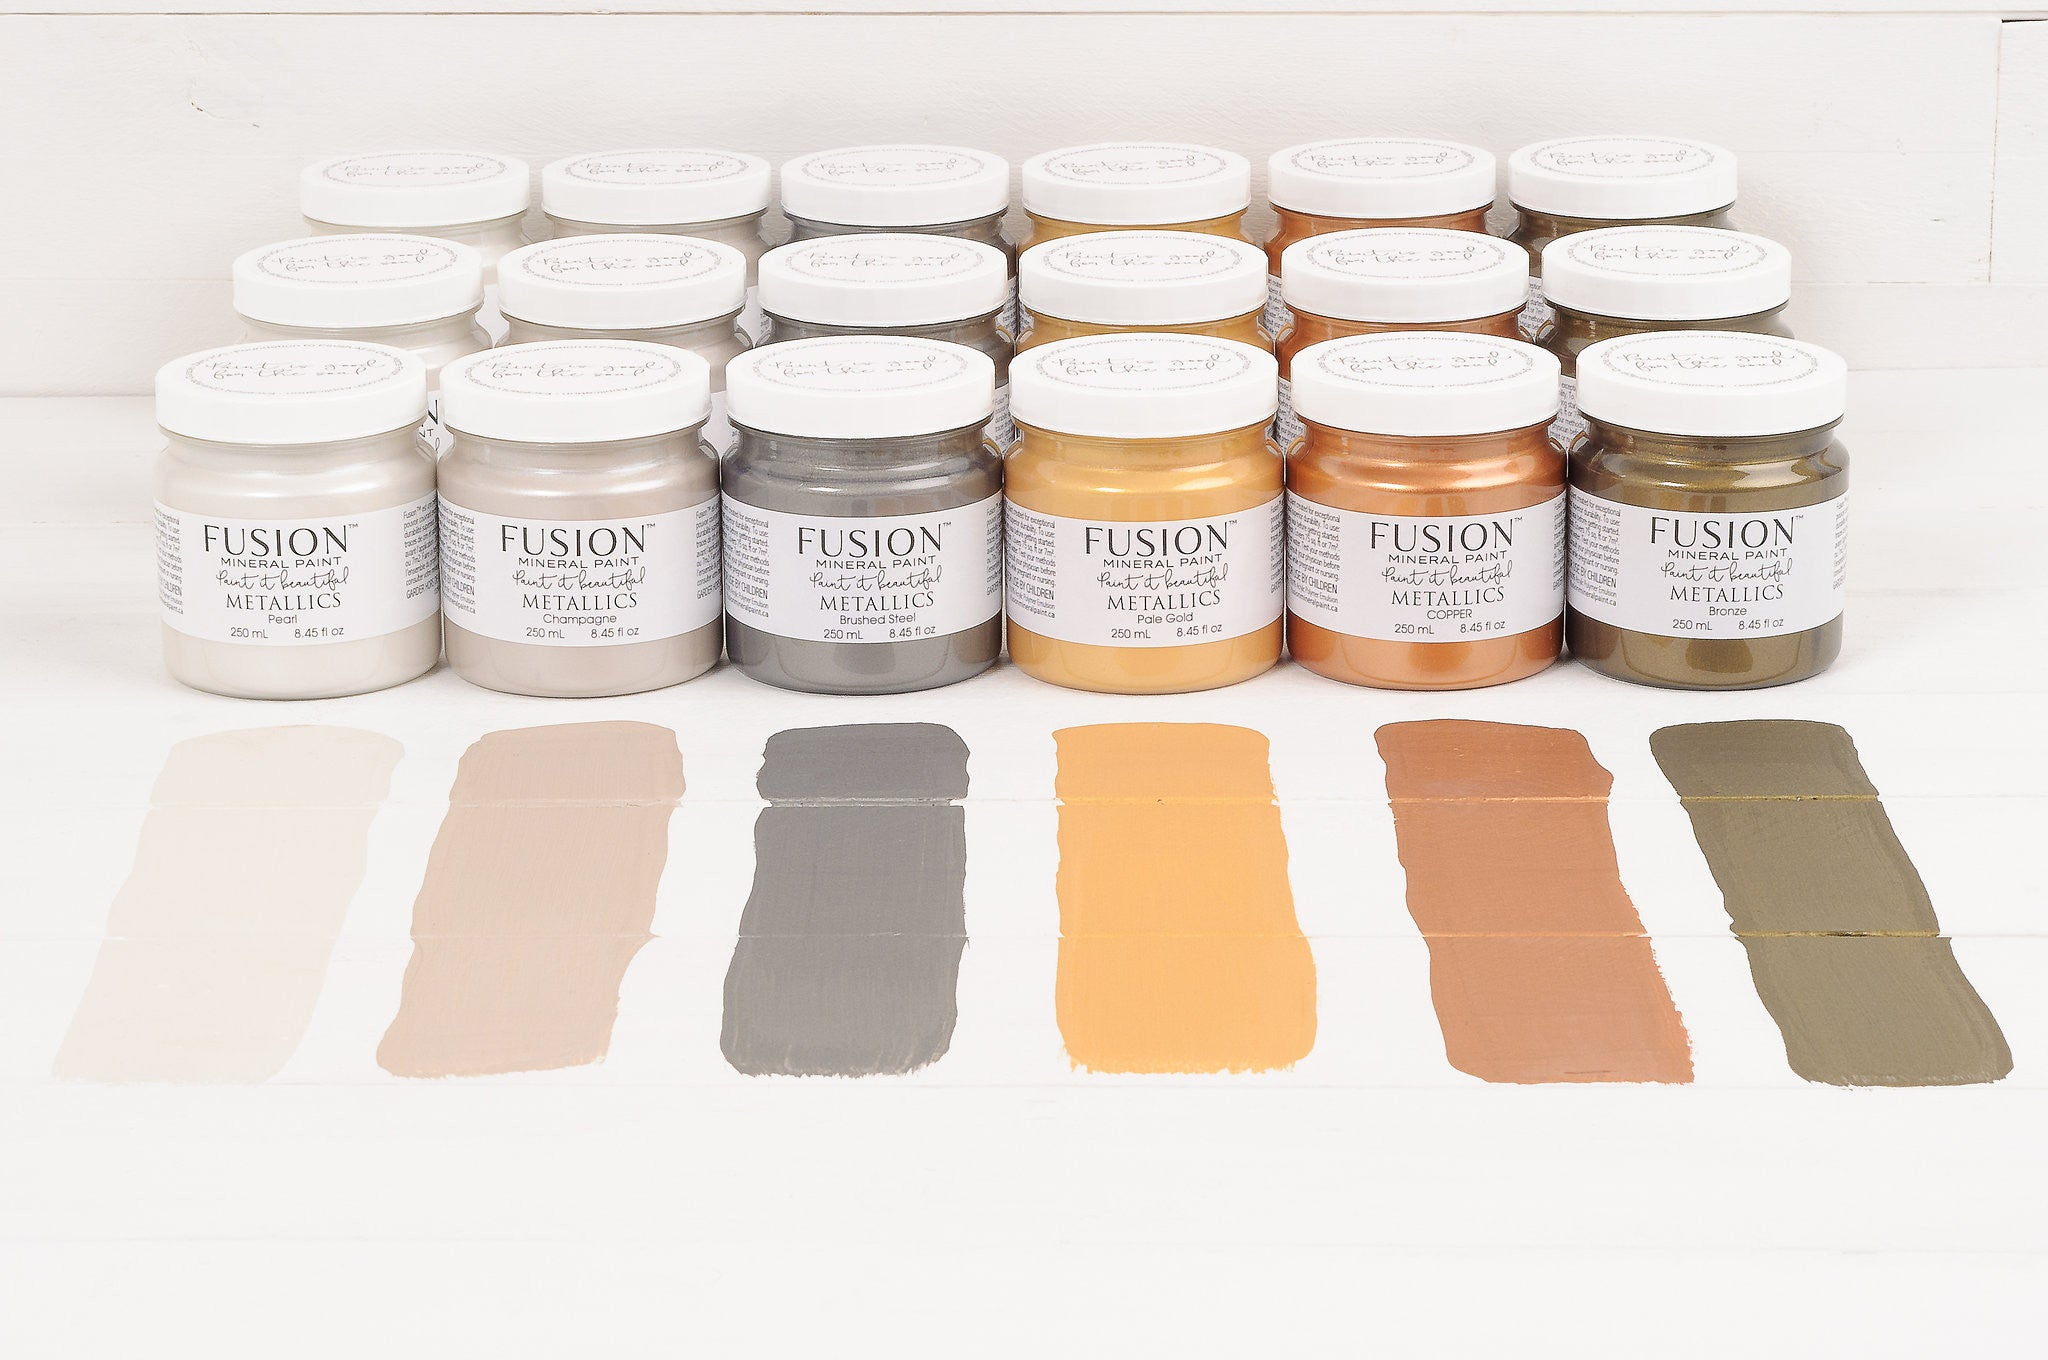 Bronze Metallic Paint - Fusion Mineral Paint - Where to Buy Online - Dear Olympia - Flate Rate US Shipping